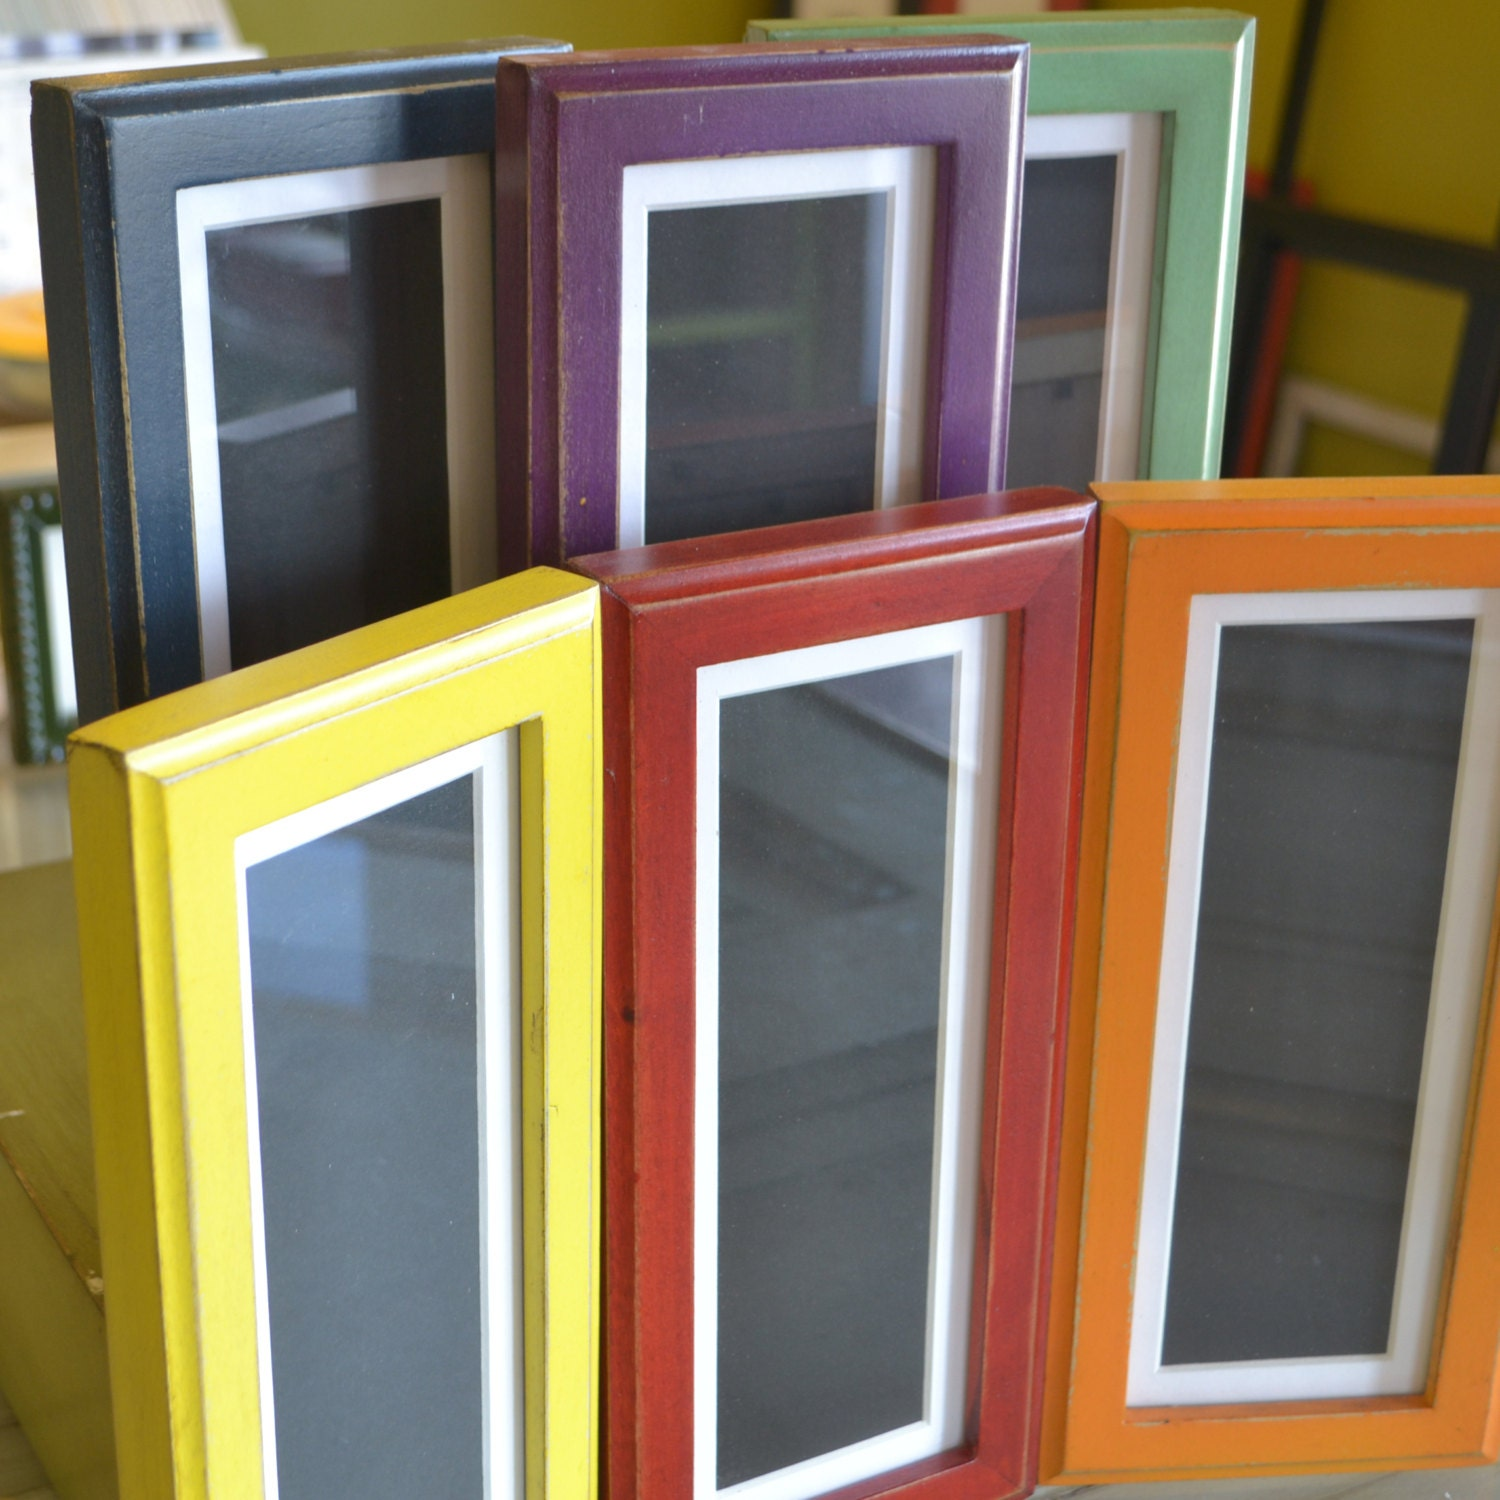 4x10 Picture Frame for Photo Booth Strip in 1x1 Outside Cove Style ...